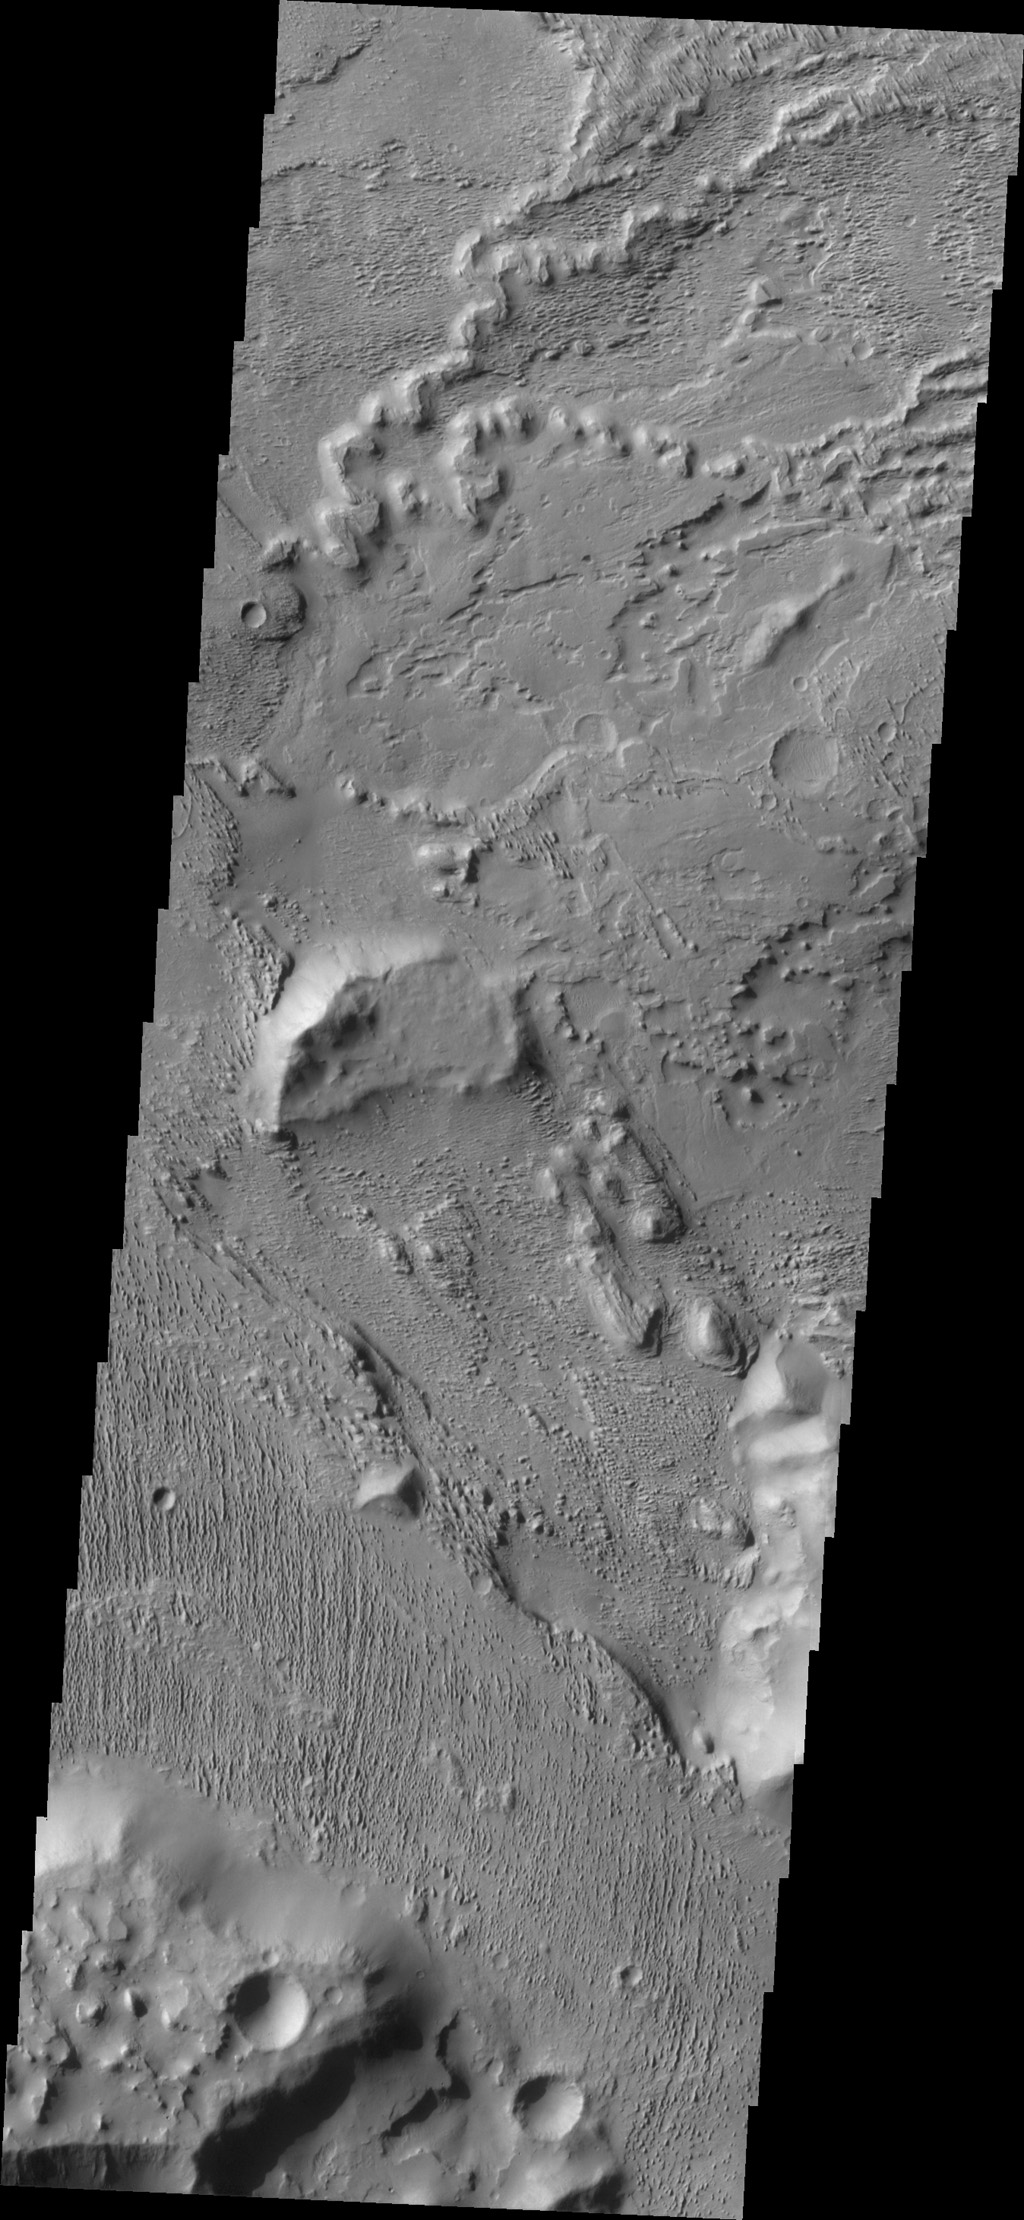 This complexly eroded region is part of Aeolis Planum with portions that appear to be layered material that has been eroded by wind action. This image is from NASA's 2001 Mars Odyssey spacecraft.